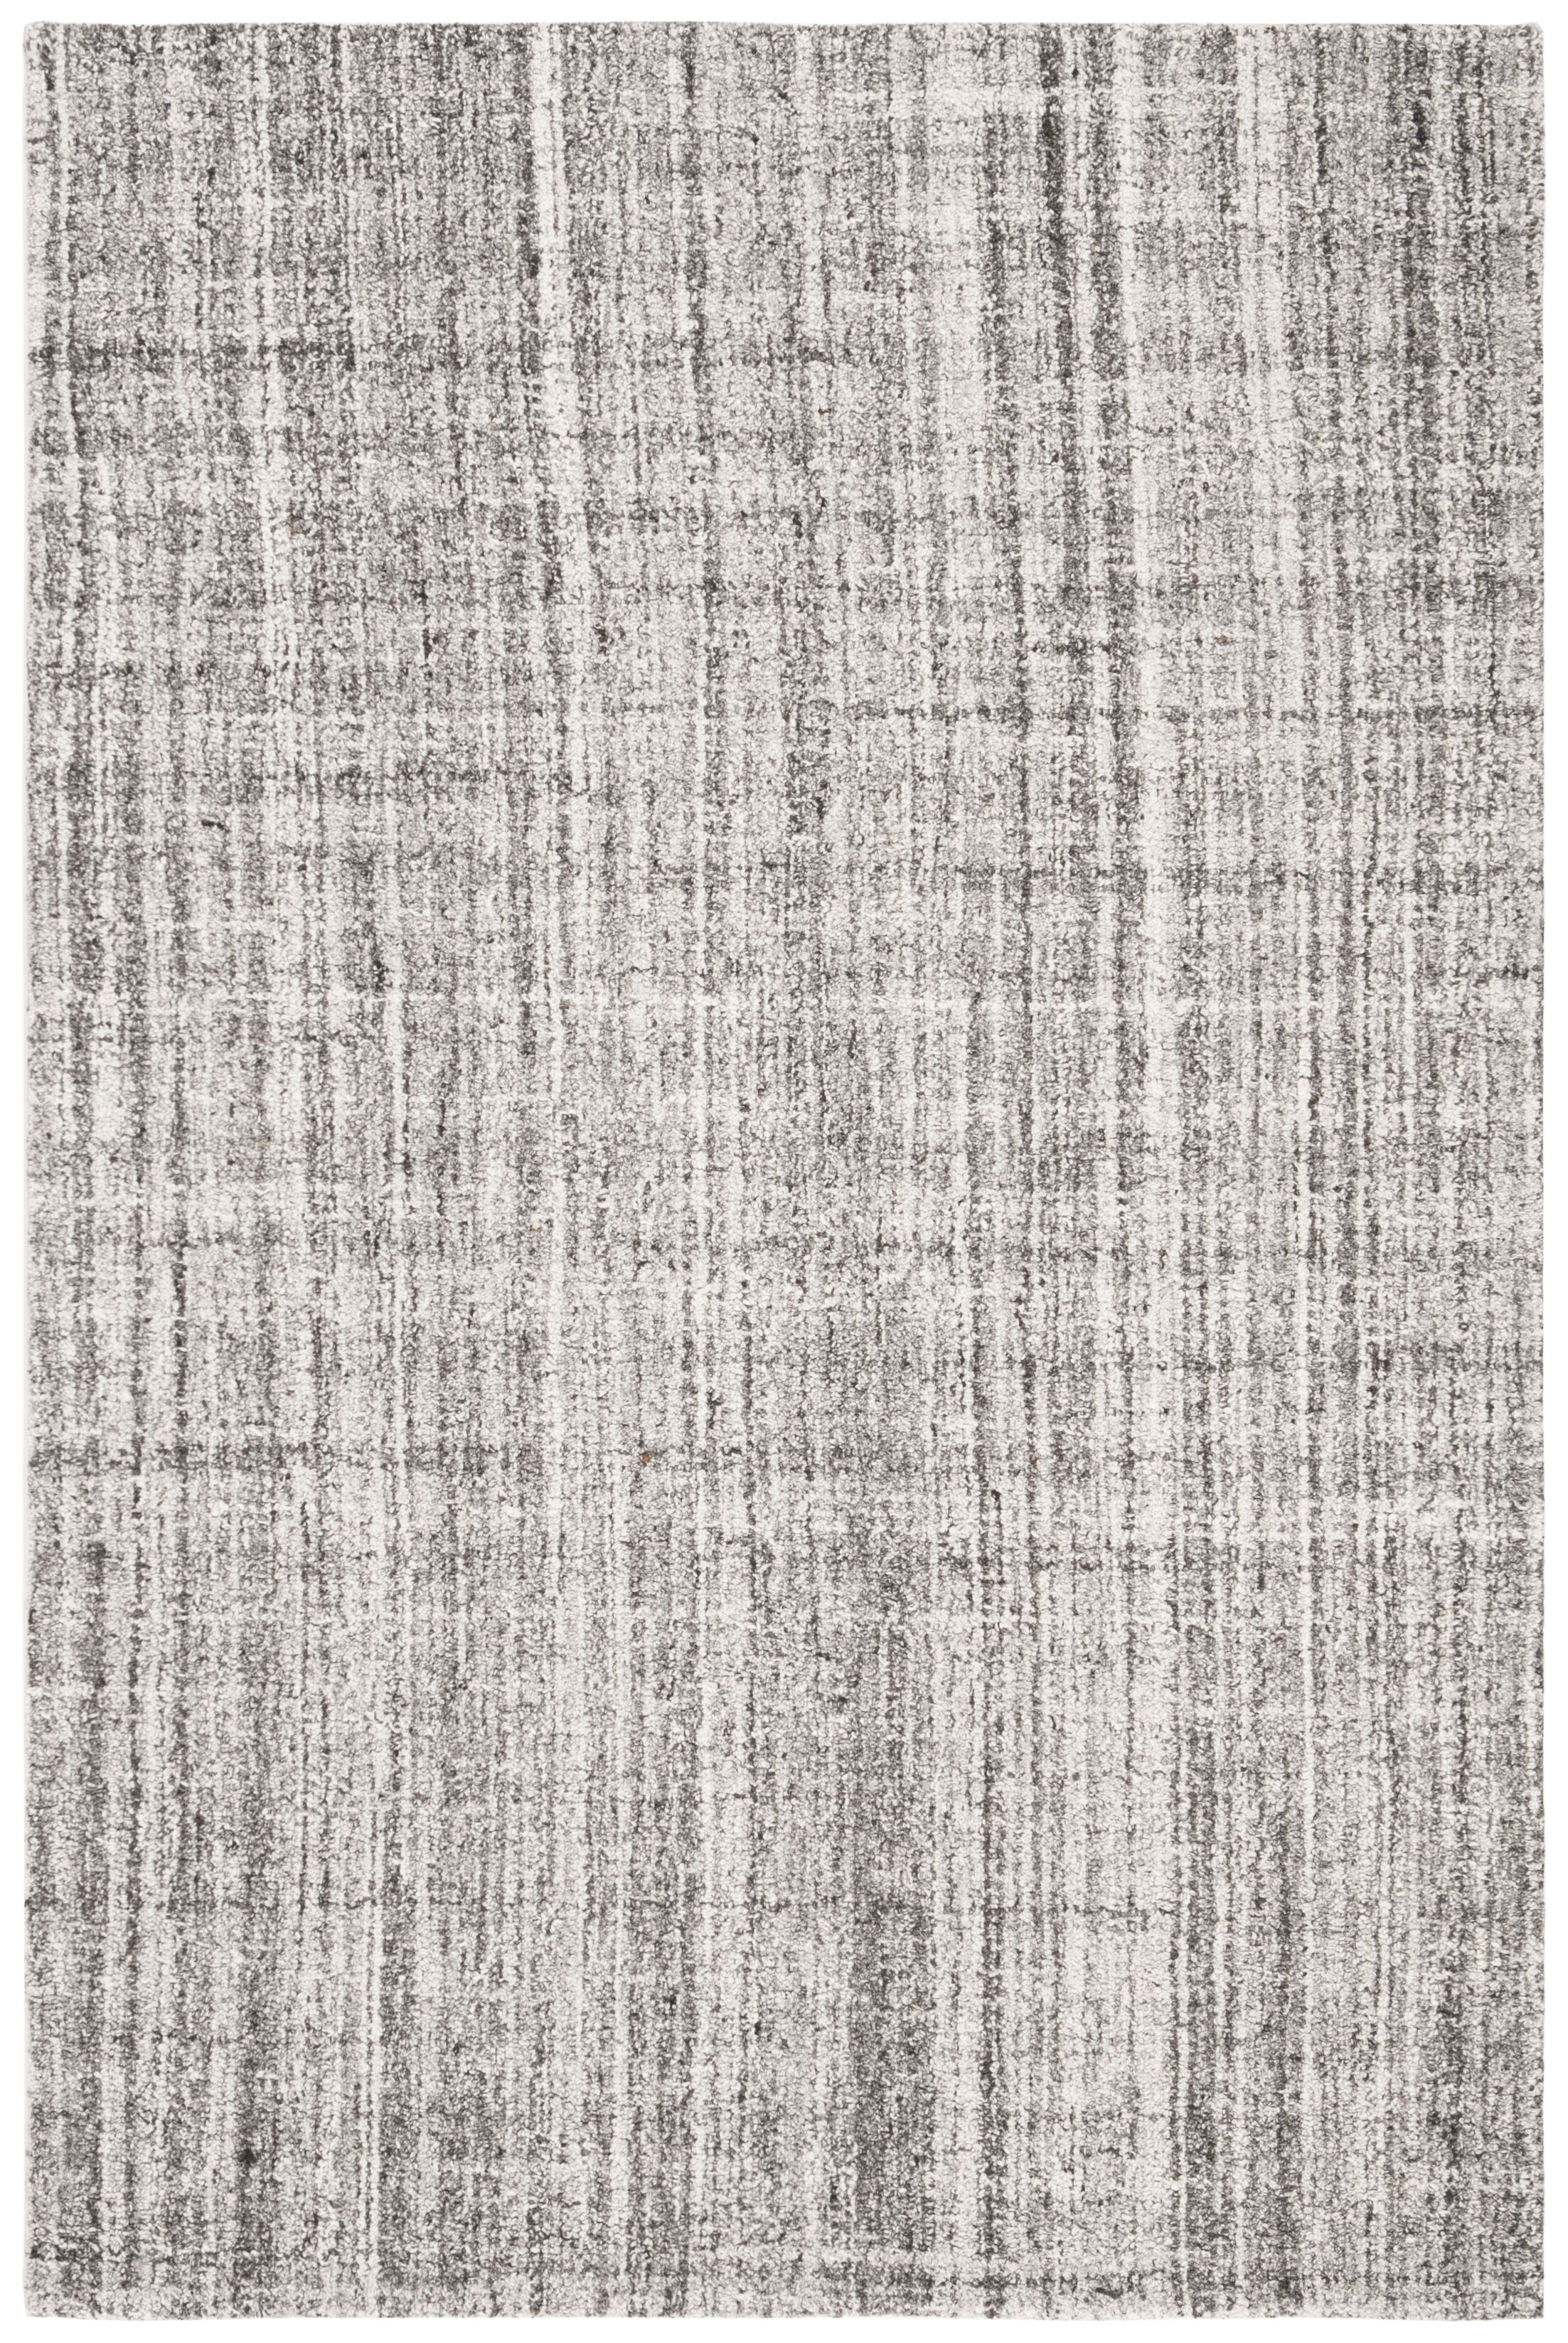 Fountain Abstract Hand-Tufted Wool Gray/Black Area Rug Rug Size: Rectangle 4' x 6'